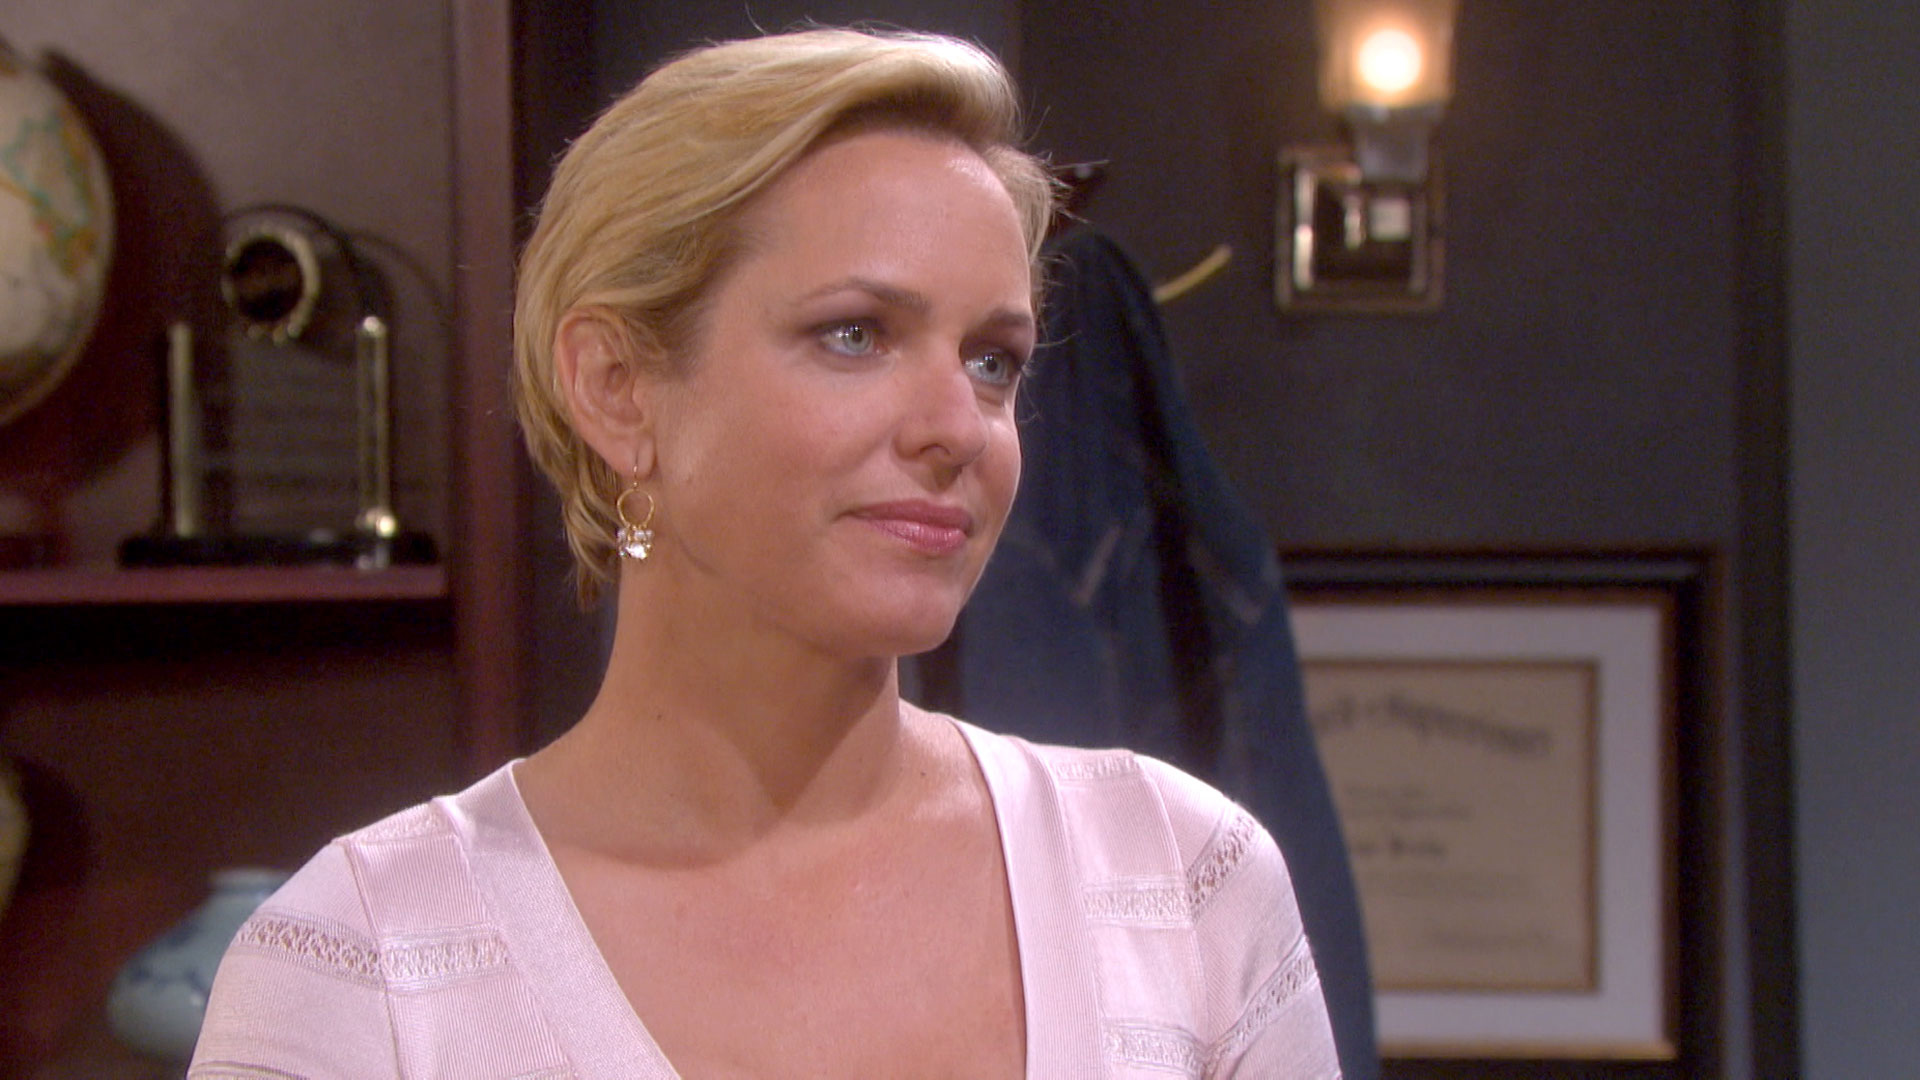 Nicole finally gets her chance to confront Kristen.